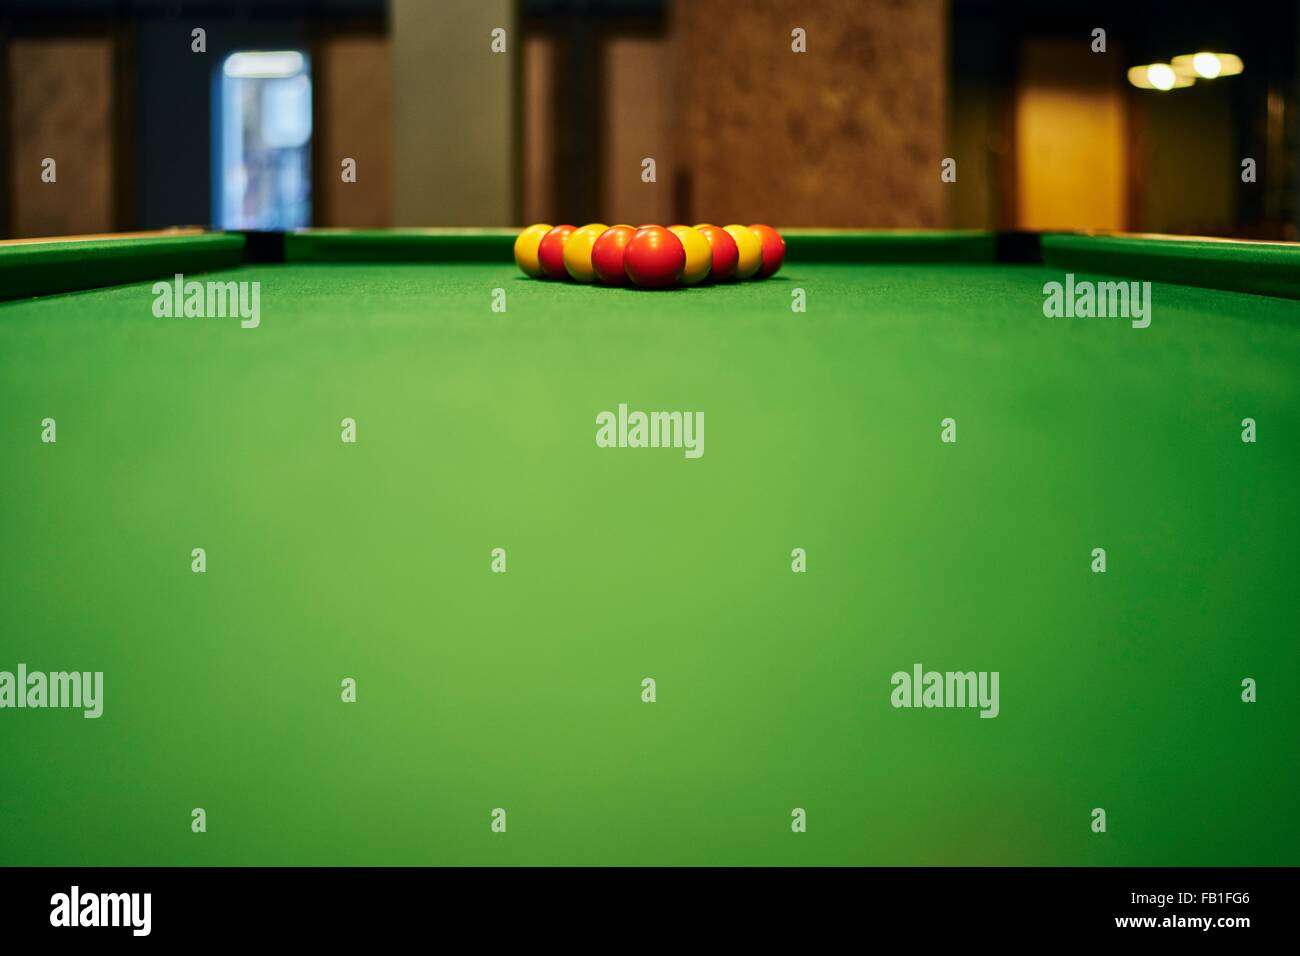 Surface Level View Of Yellow And Red Pool Balls On Pool Table Stock - How to level a pool table